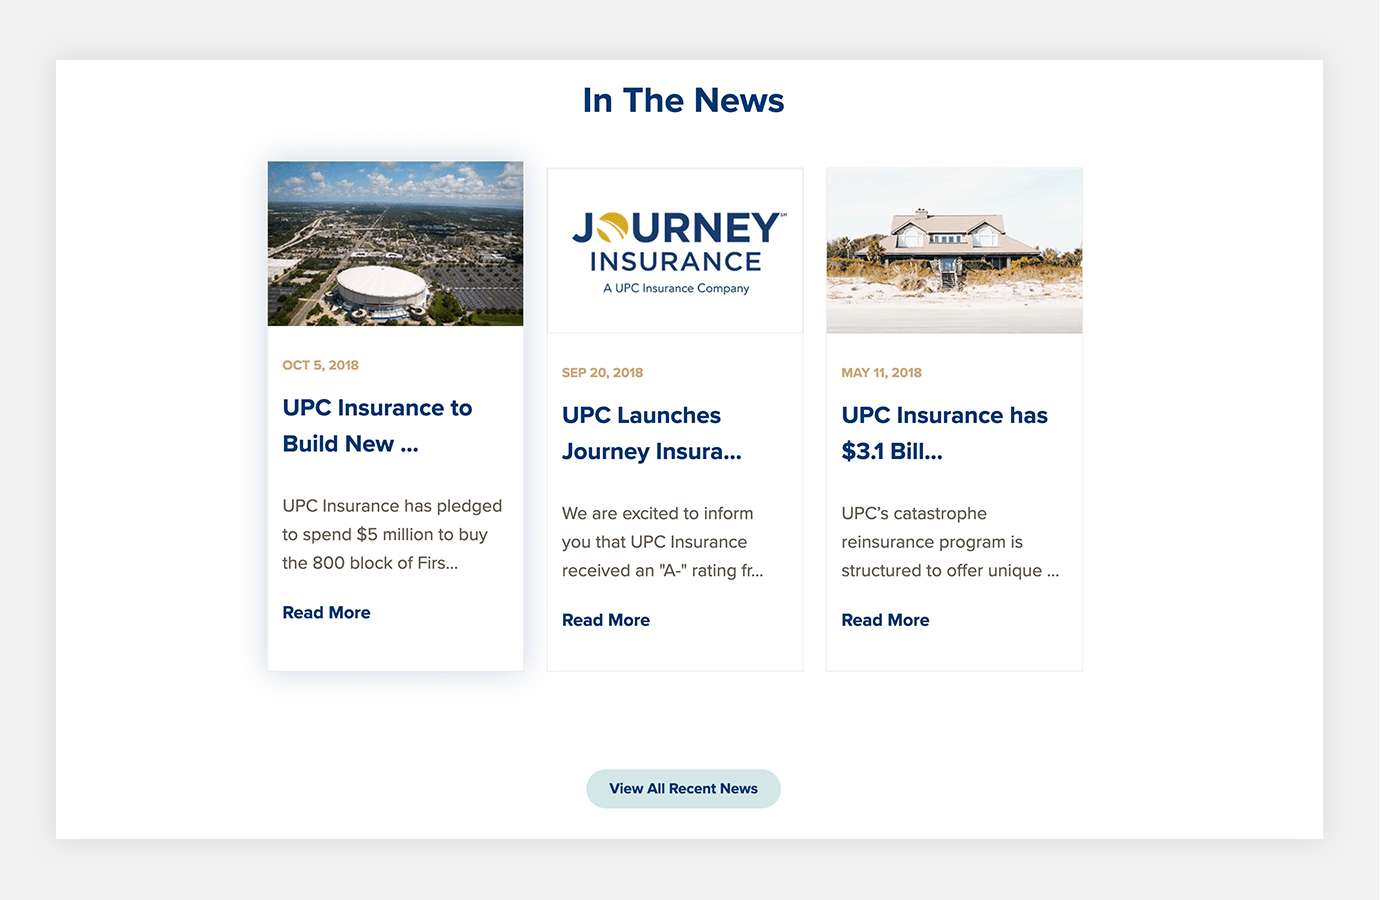 Screenshot of UPC Insurance website showing design module for In the News area